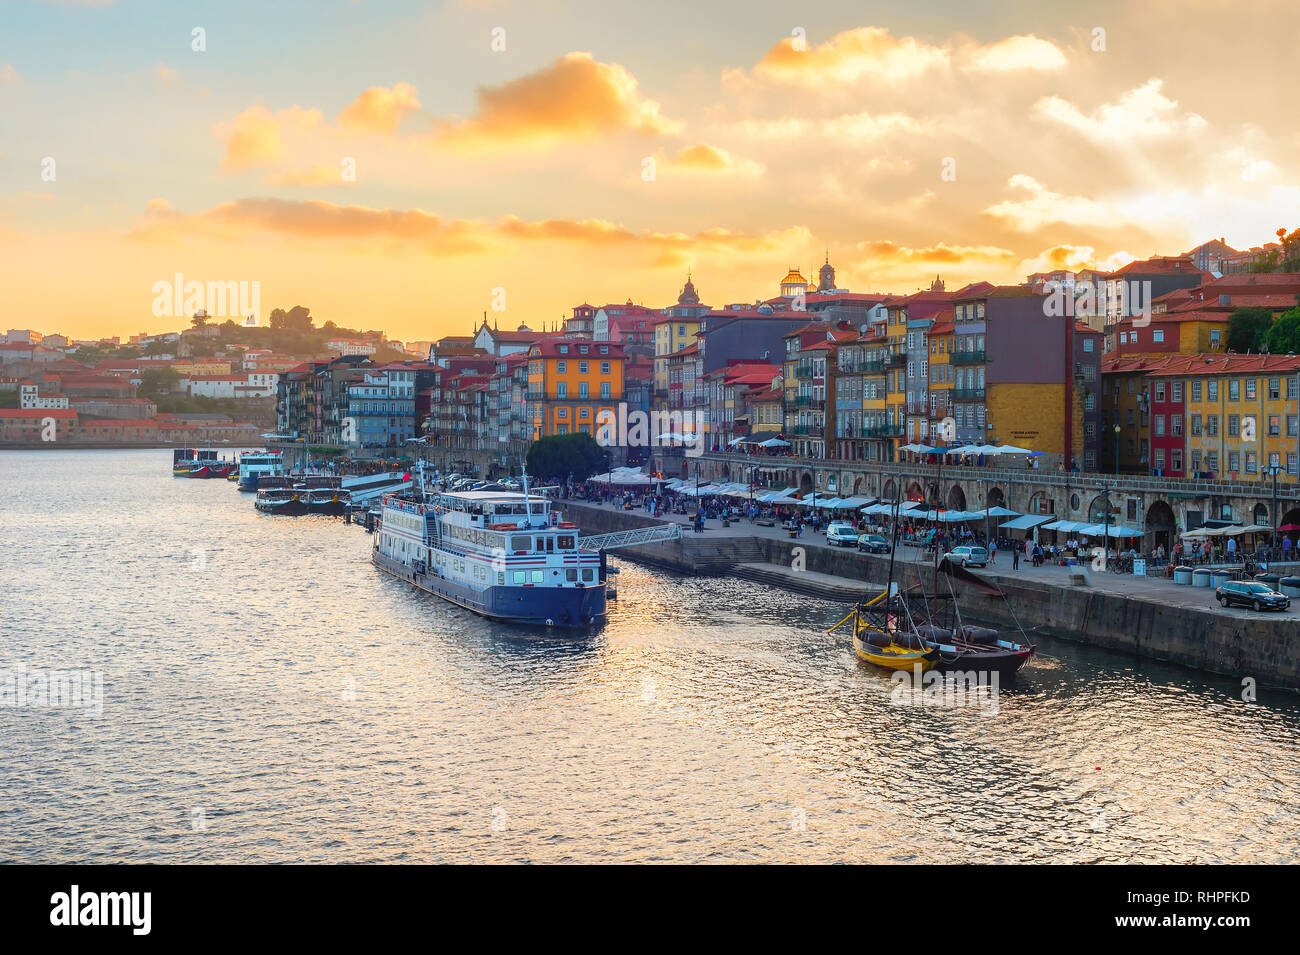 Sunset sky above Porto skyline, embankment with tour boats and wine ships at Douro river, tourists walking and sitting in restaurants of historical do - Stock Image